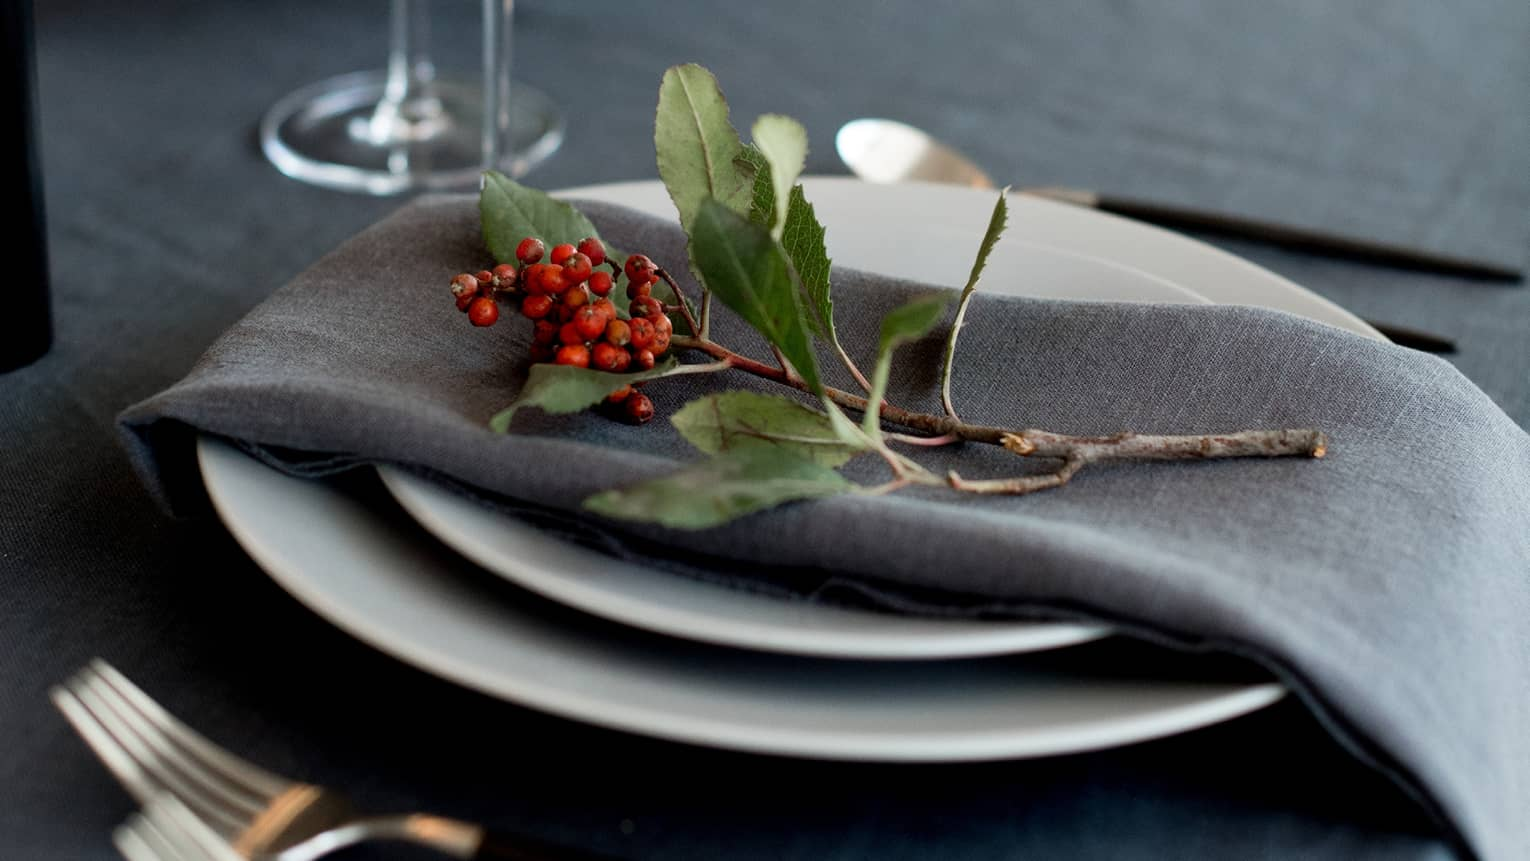 Table setting with white china topped with grey napkin and sprig of holly, cutlery, glasses